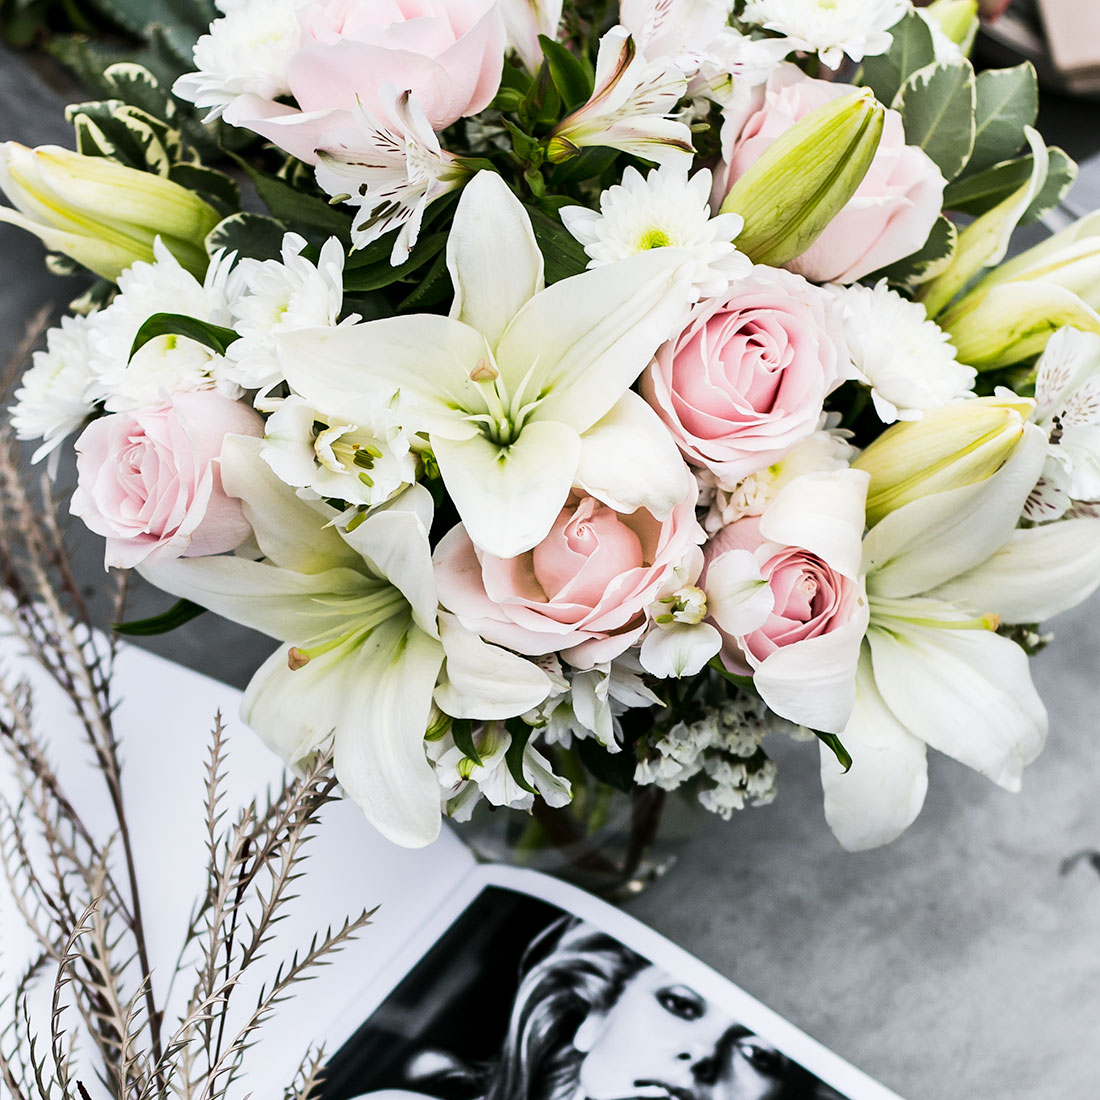 white lilies and pink roses close up